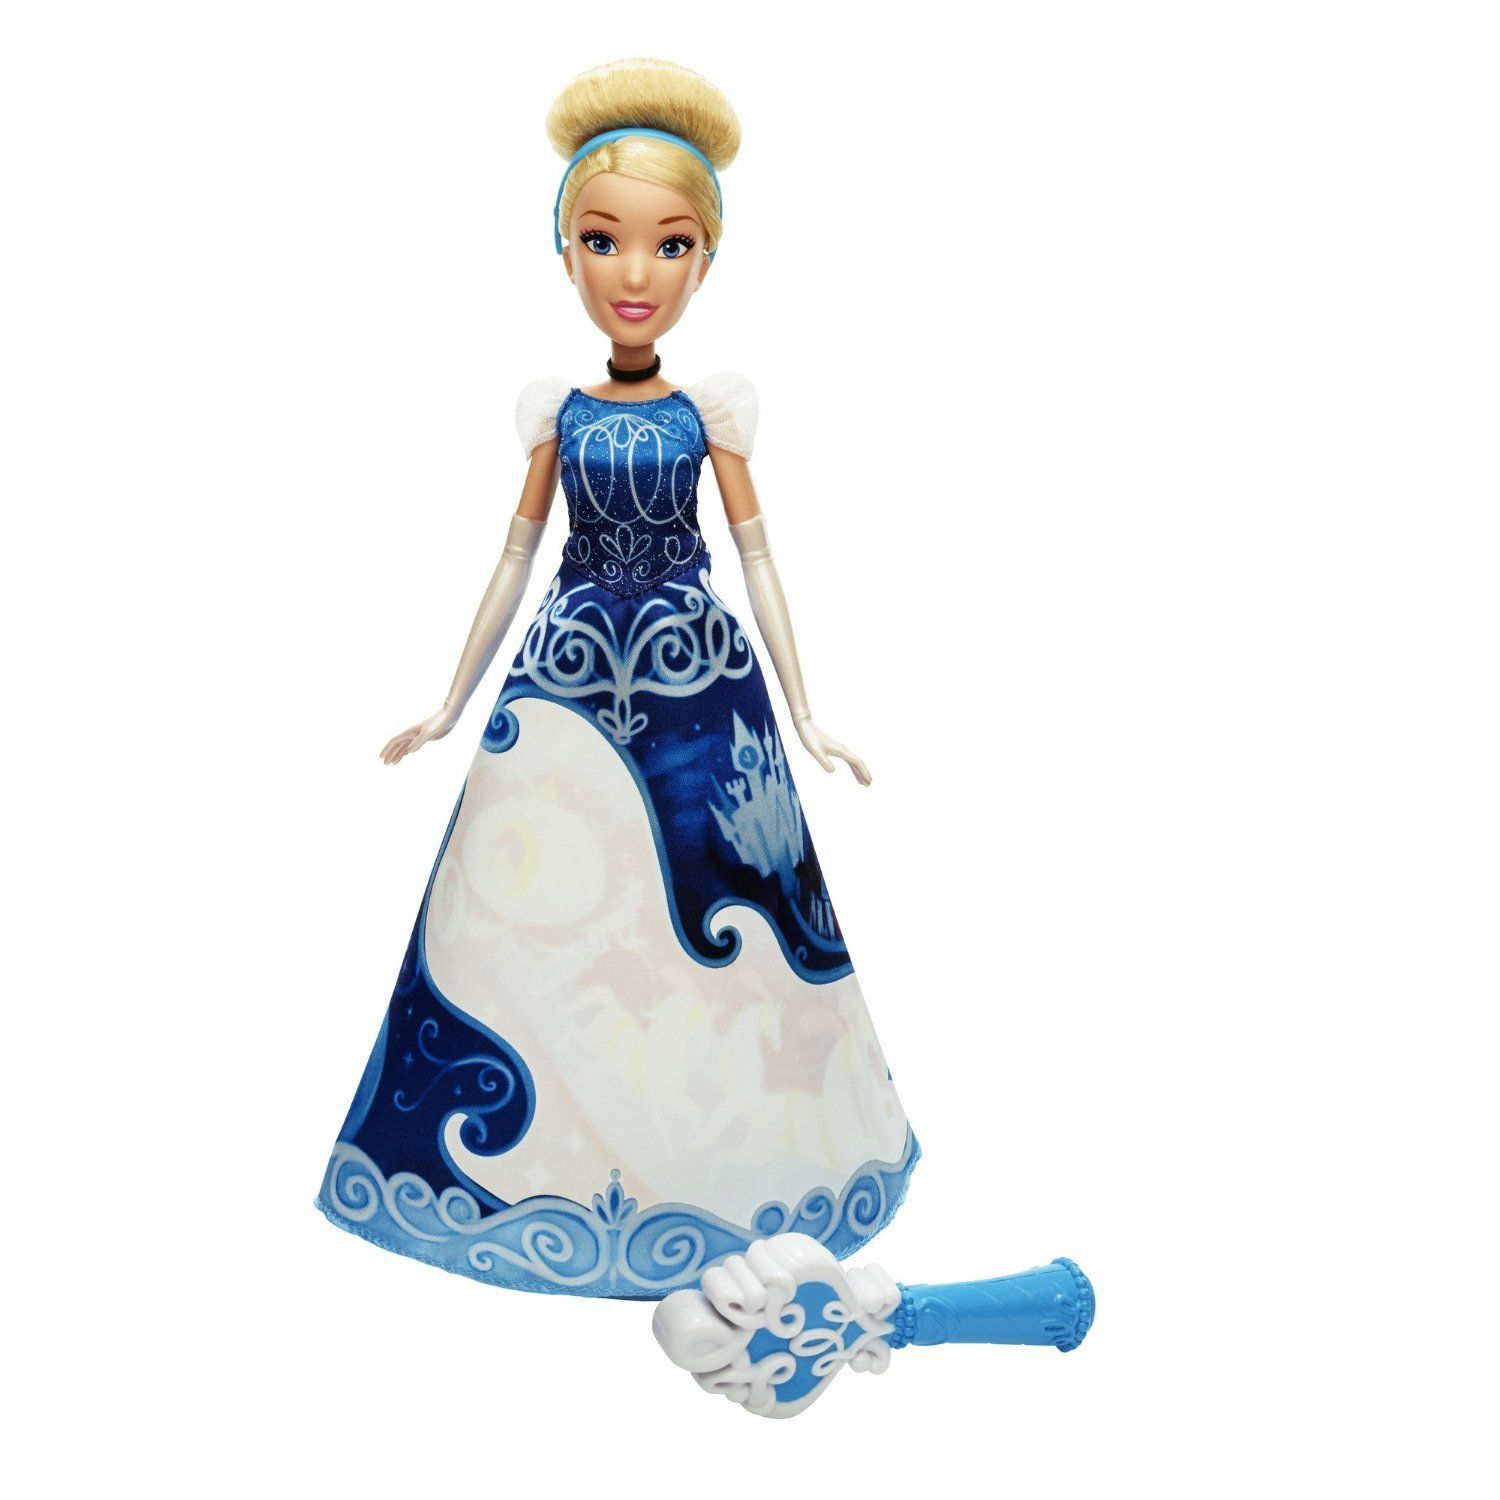 Disney Princess Cinderella Story Skirt Doll in Blue by Hasbro